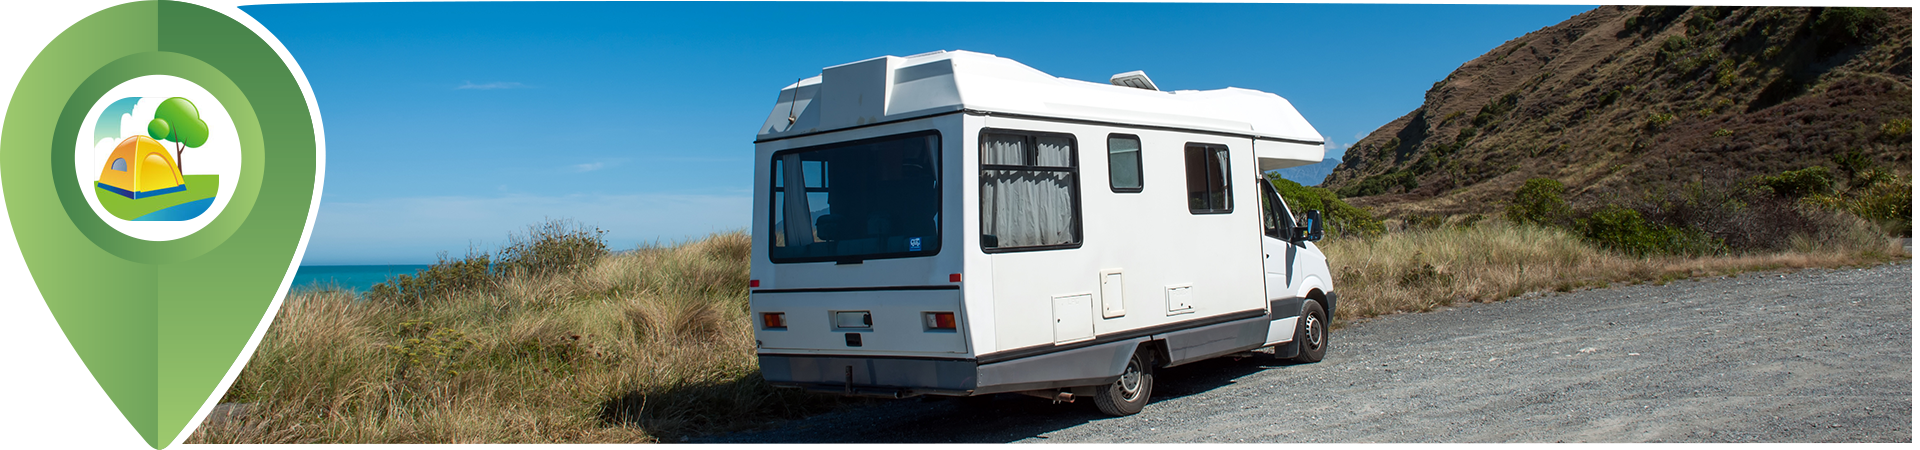 Tips For Finding And Choosing Boondocking Locations